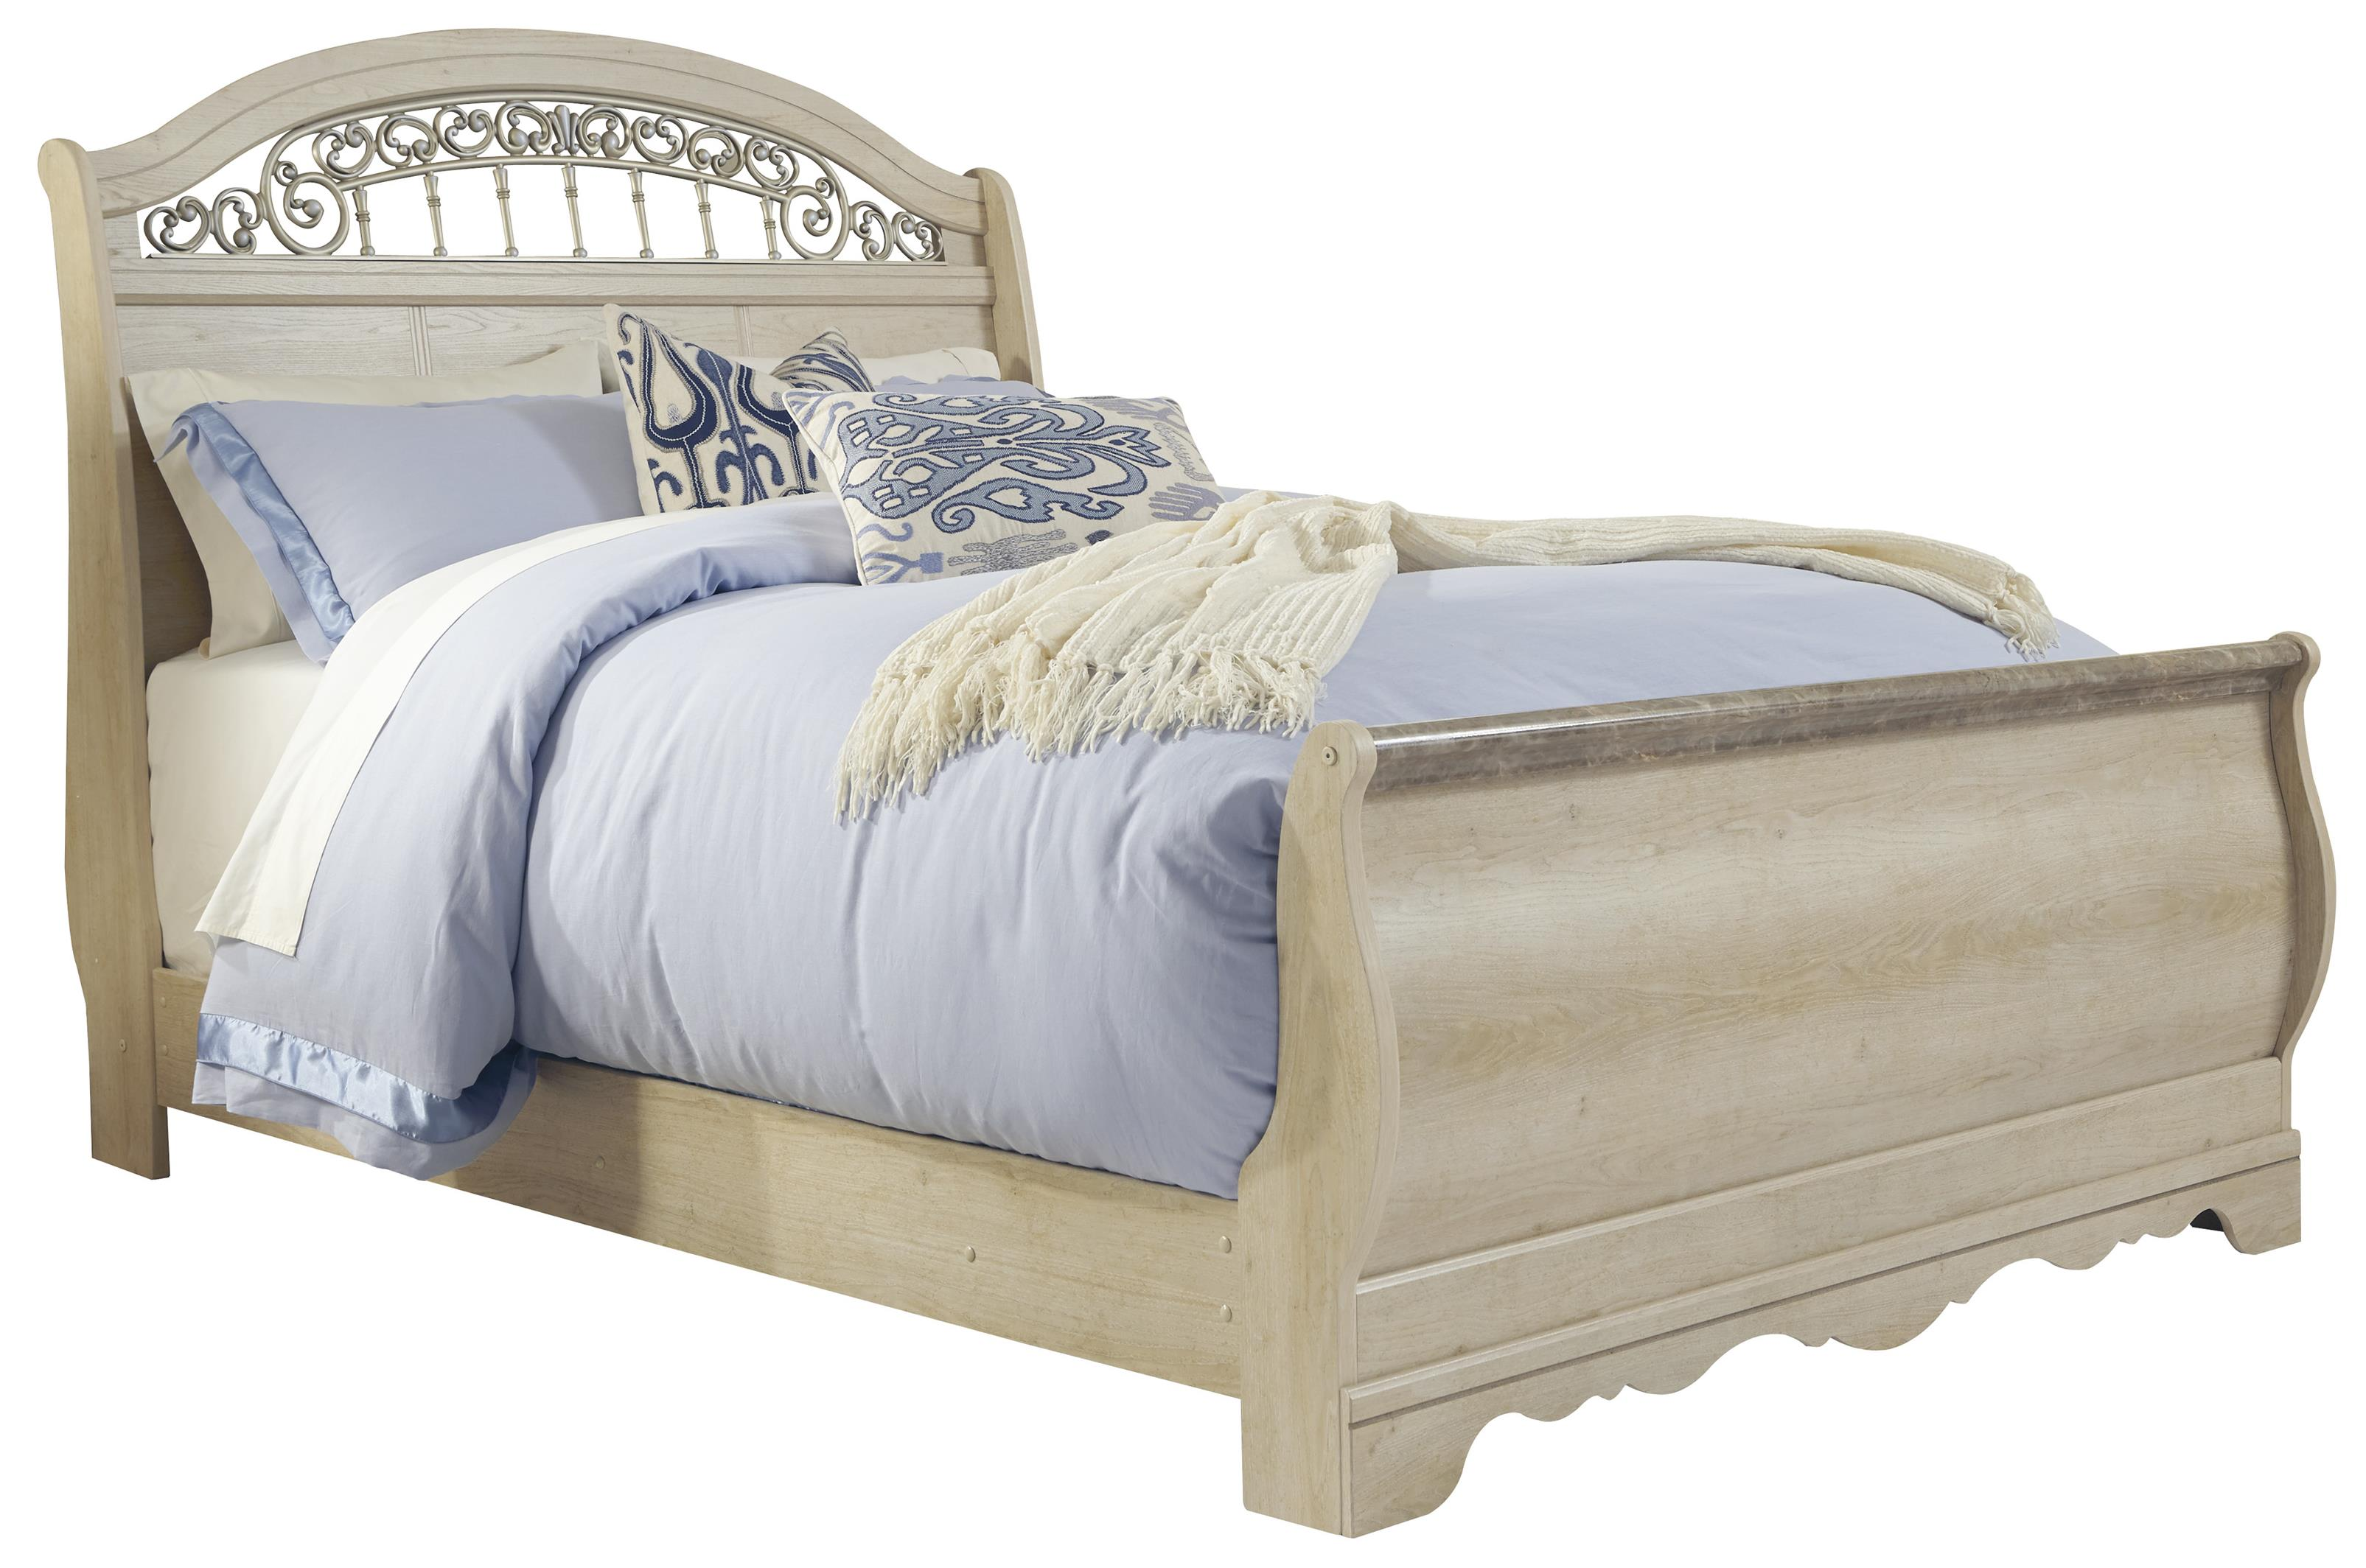 Signature Design by Ashley Catalina Queen Sleigh Bed - Item Number: B196-77+74+96